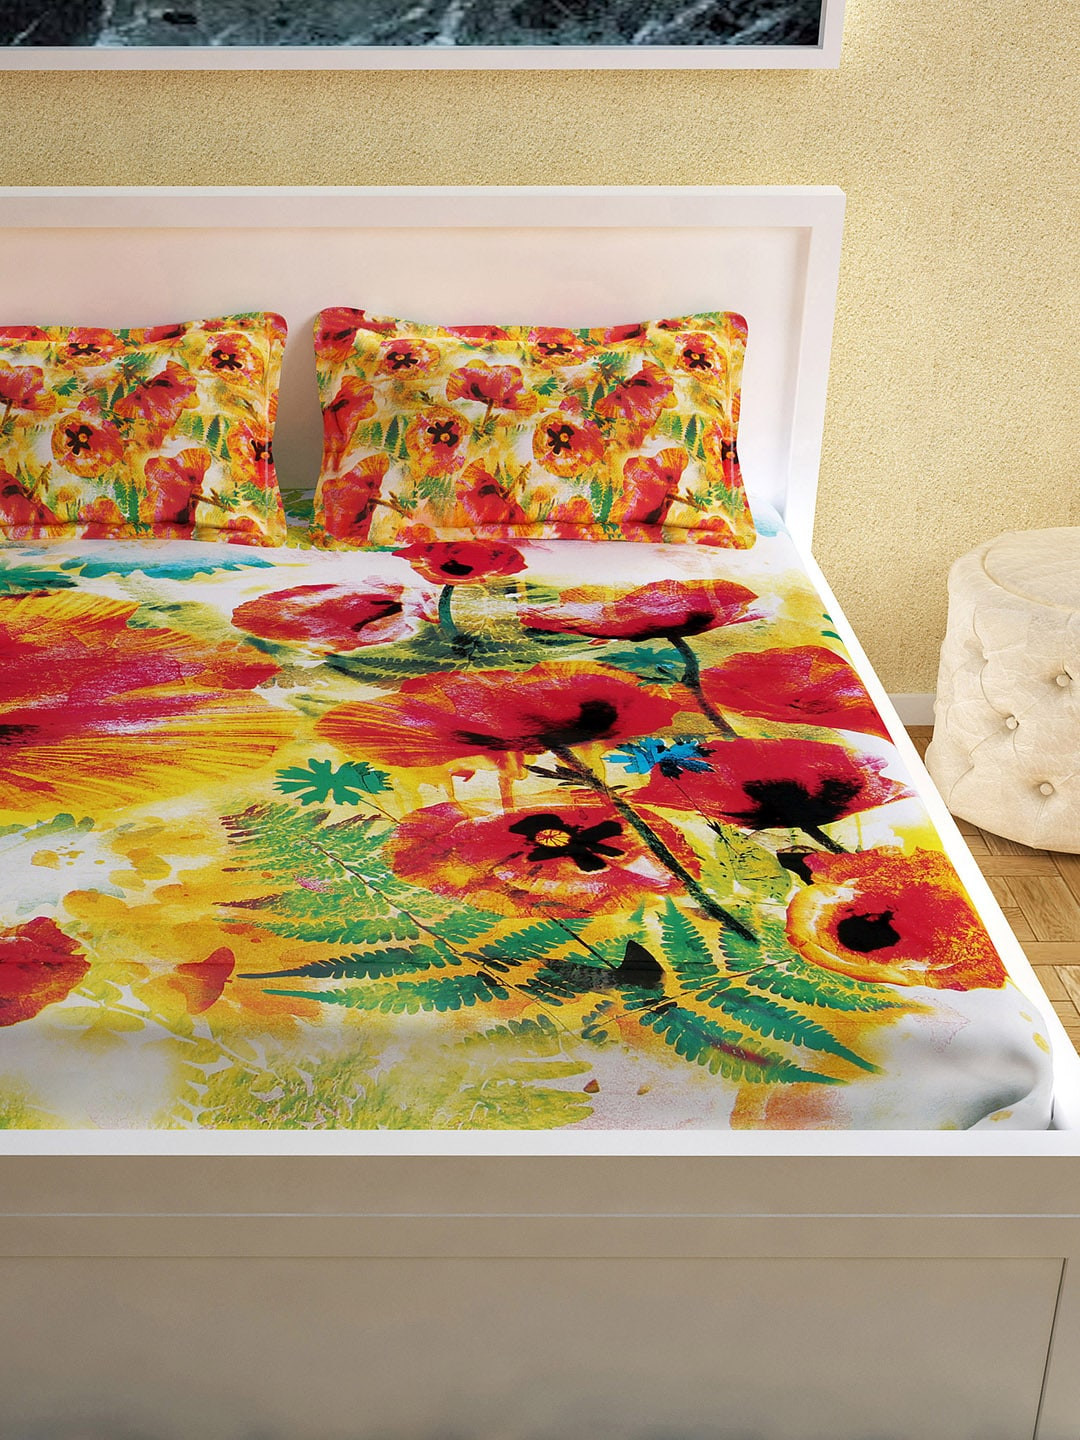 Colorful bed sheets - Colorful Bed Sheets 10